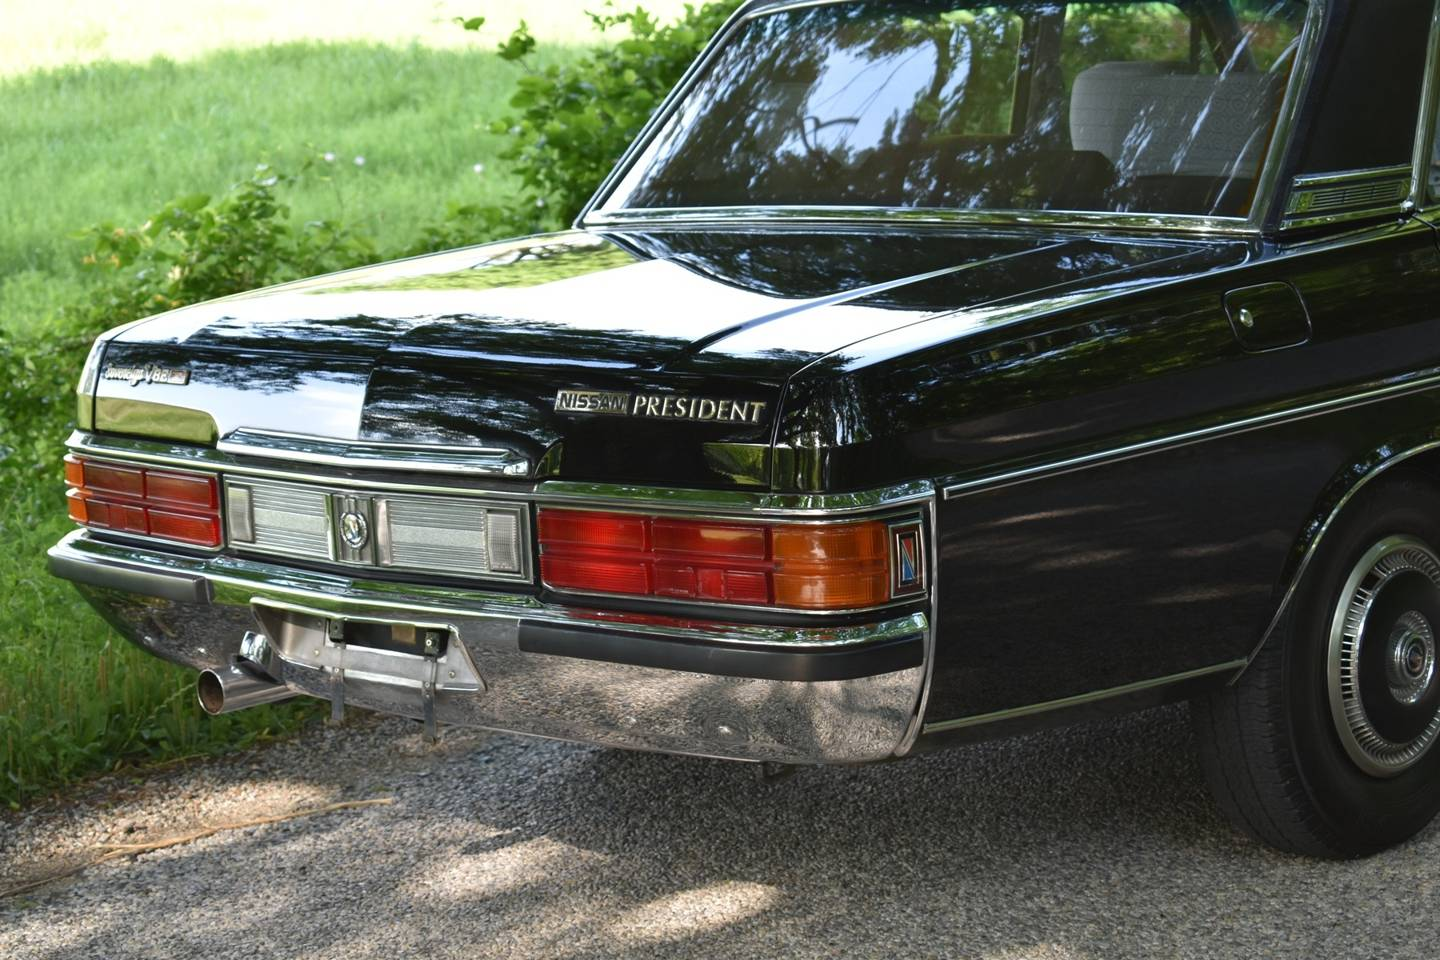 9th Image of a 1987 NISSAN PRESIDENT